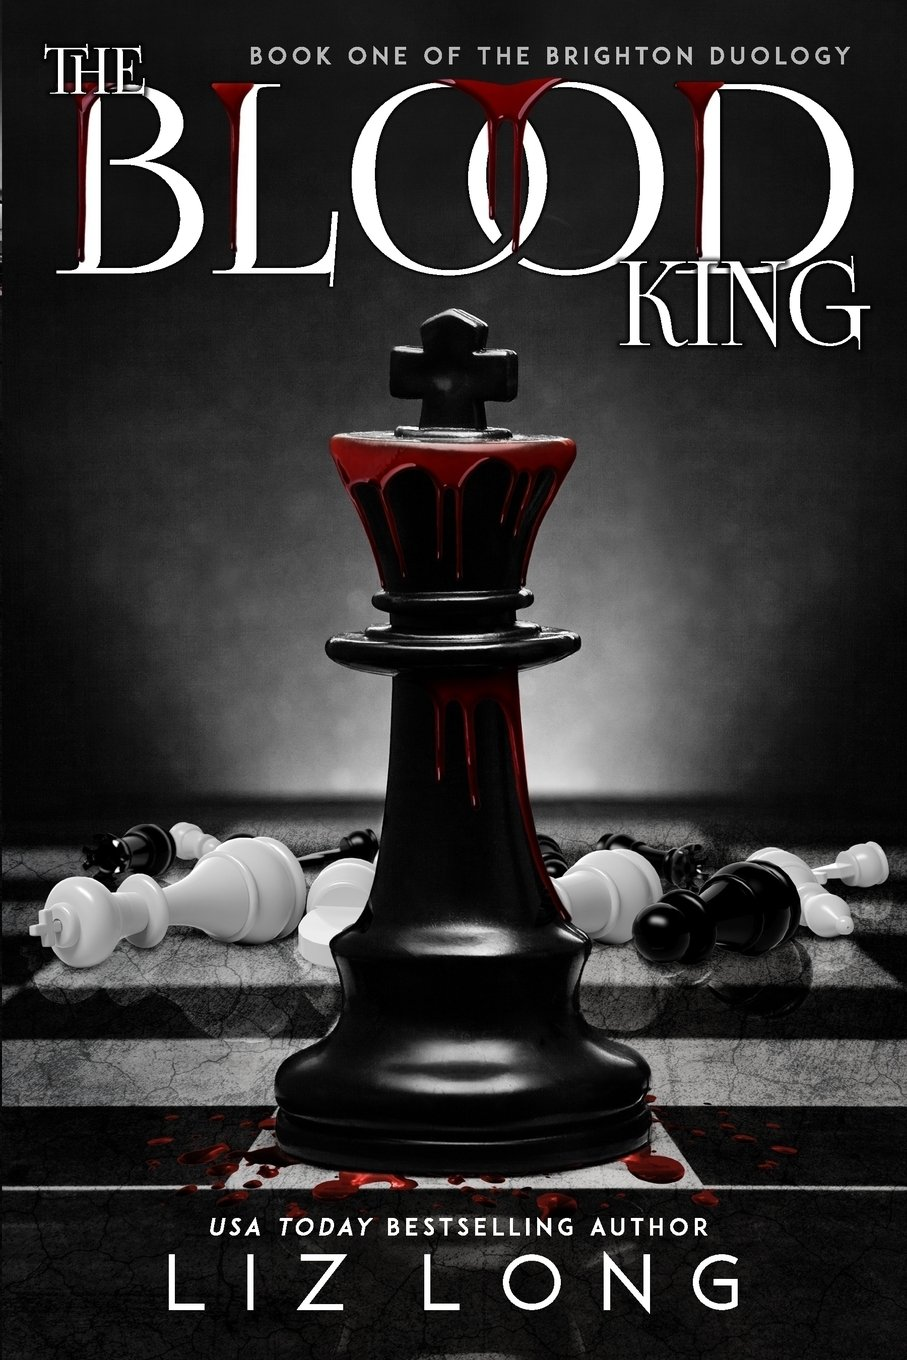 The Blood King (The Brighton Duology) (Volume 1)